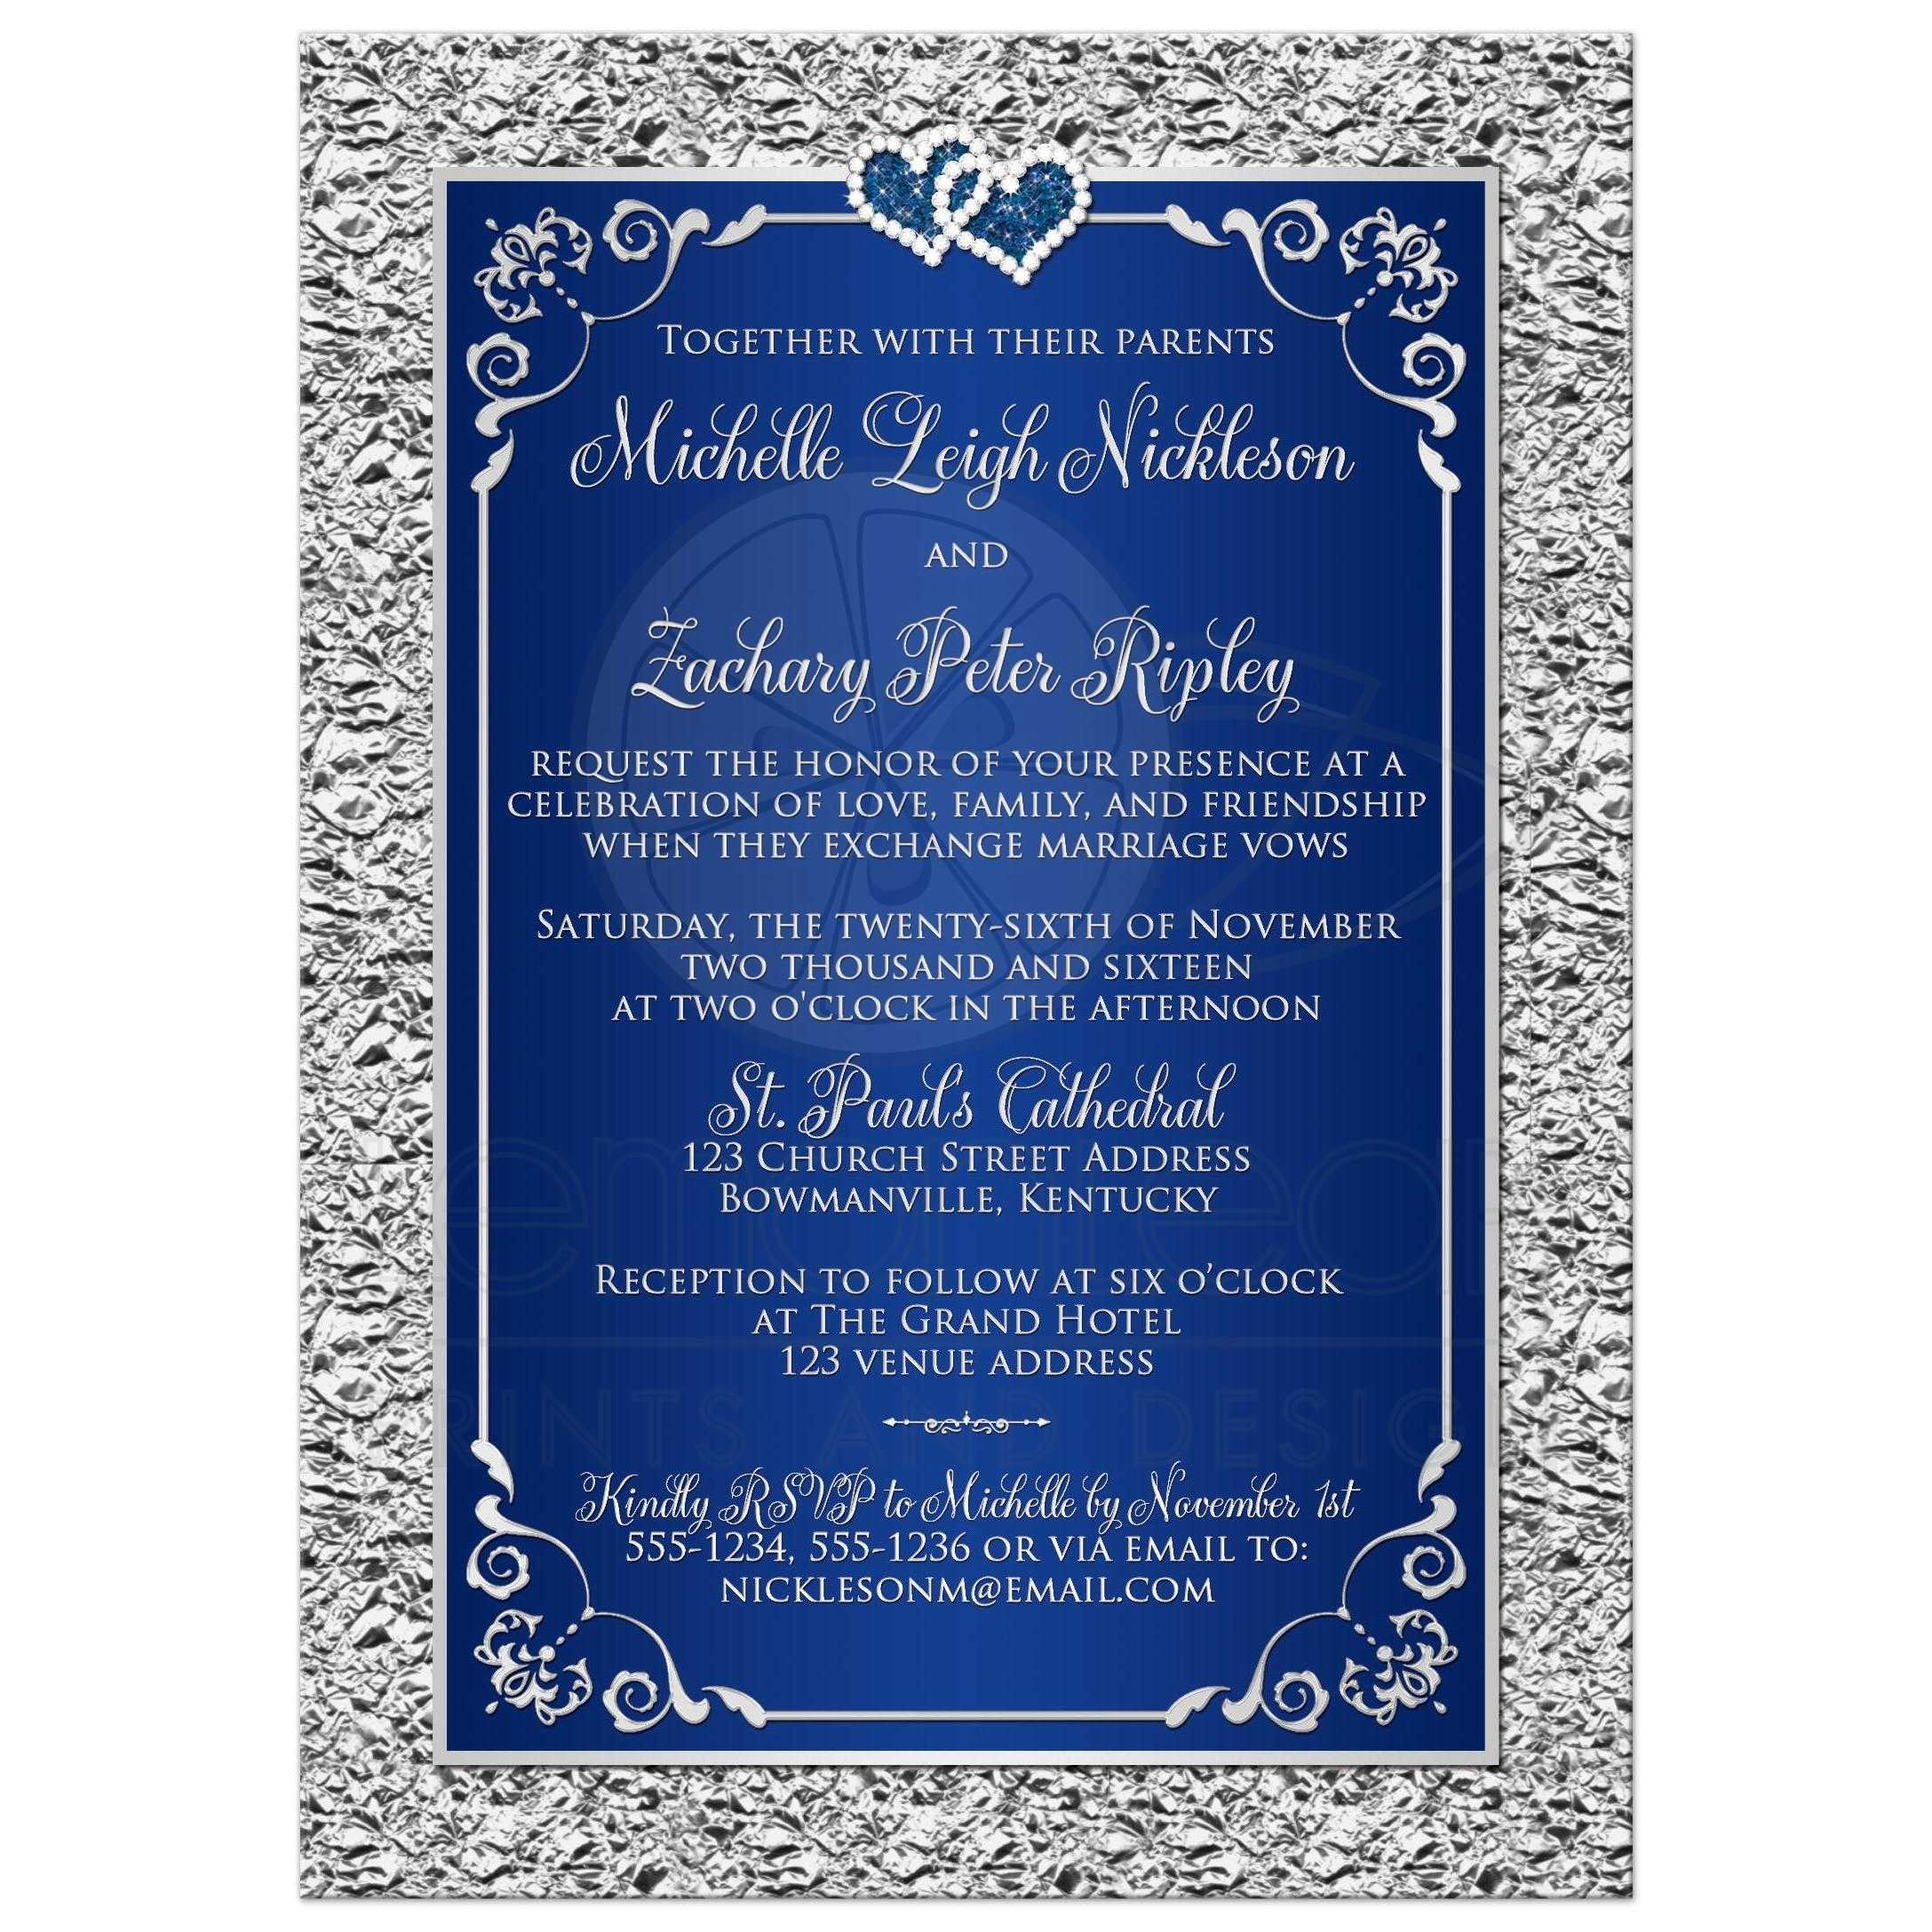 Wedding Invitation | Navy Blue, Silver Scrolls | Faux Silver Foil